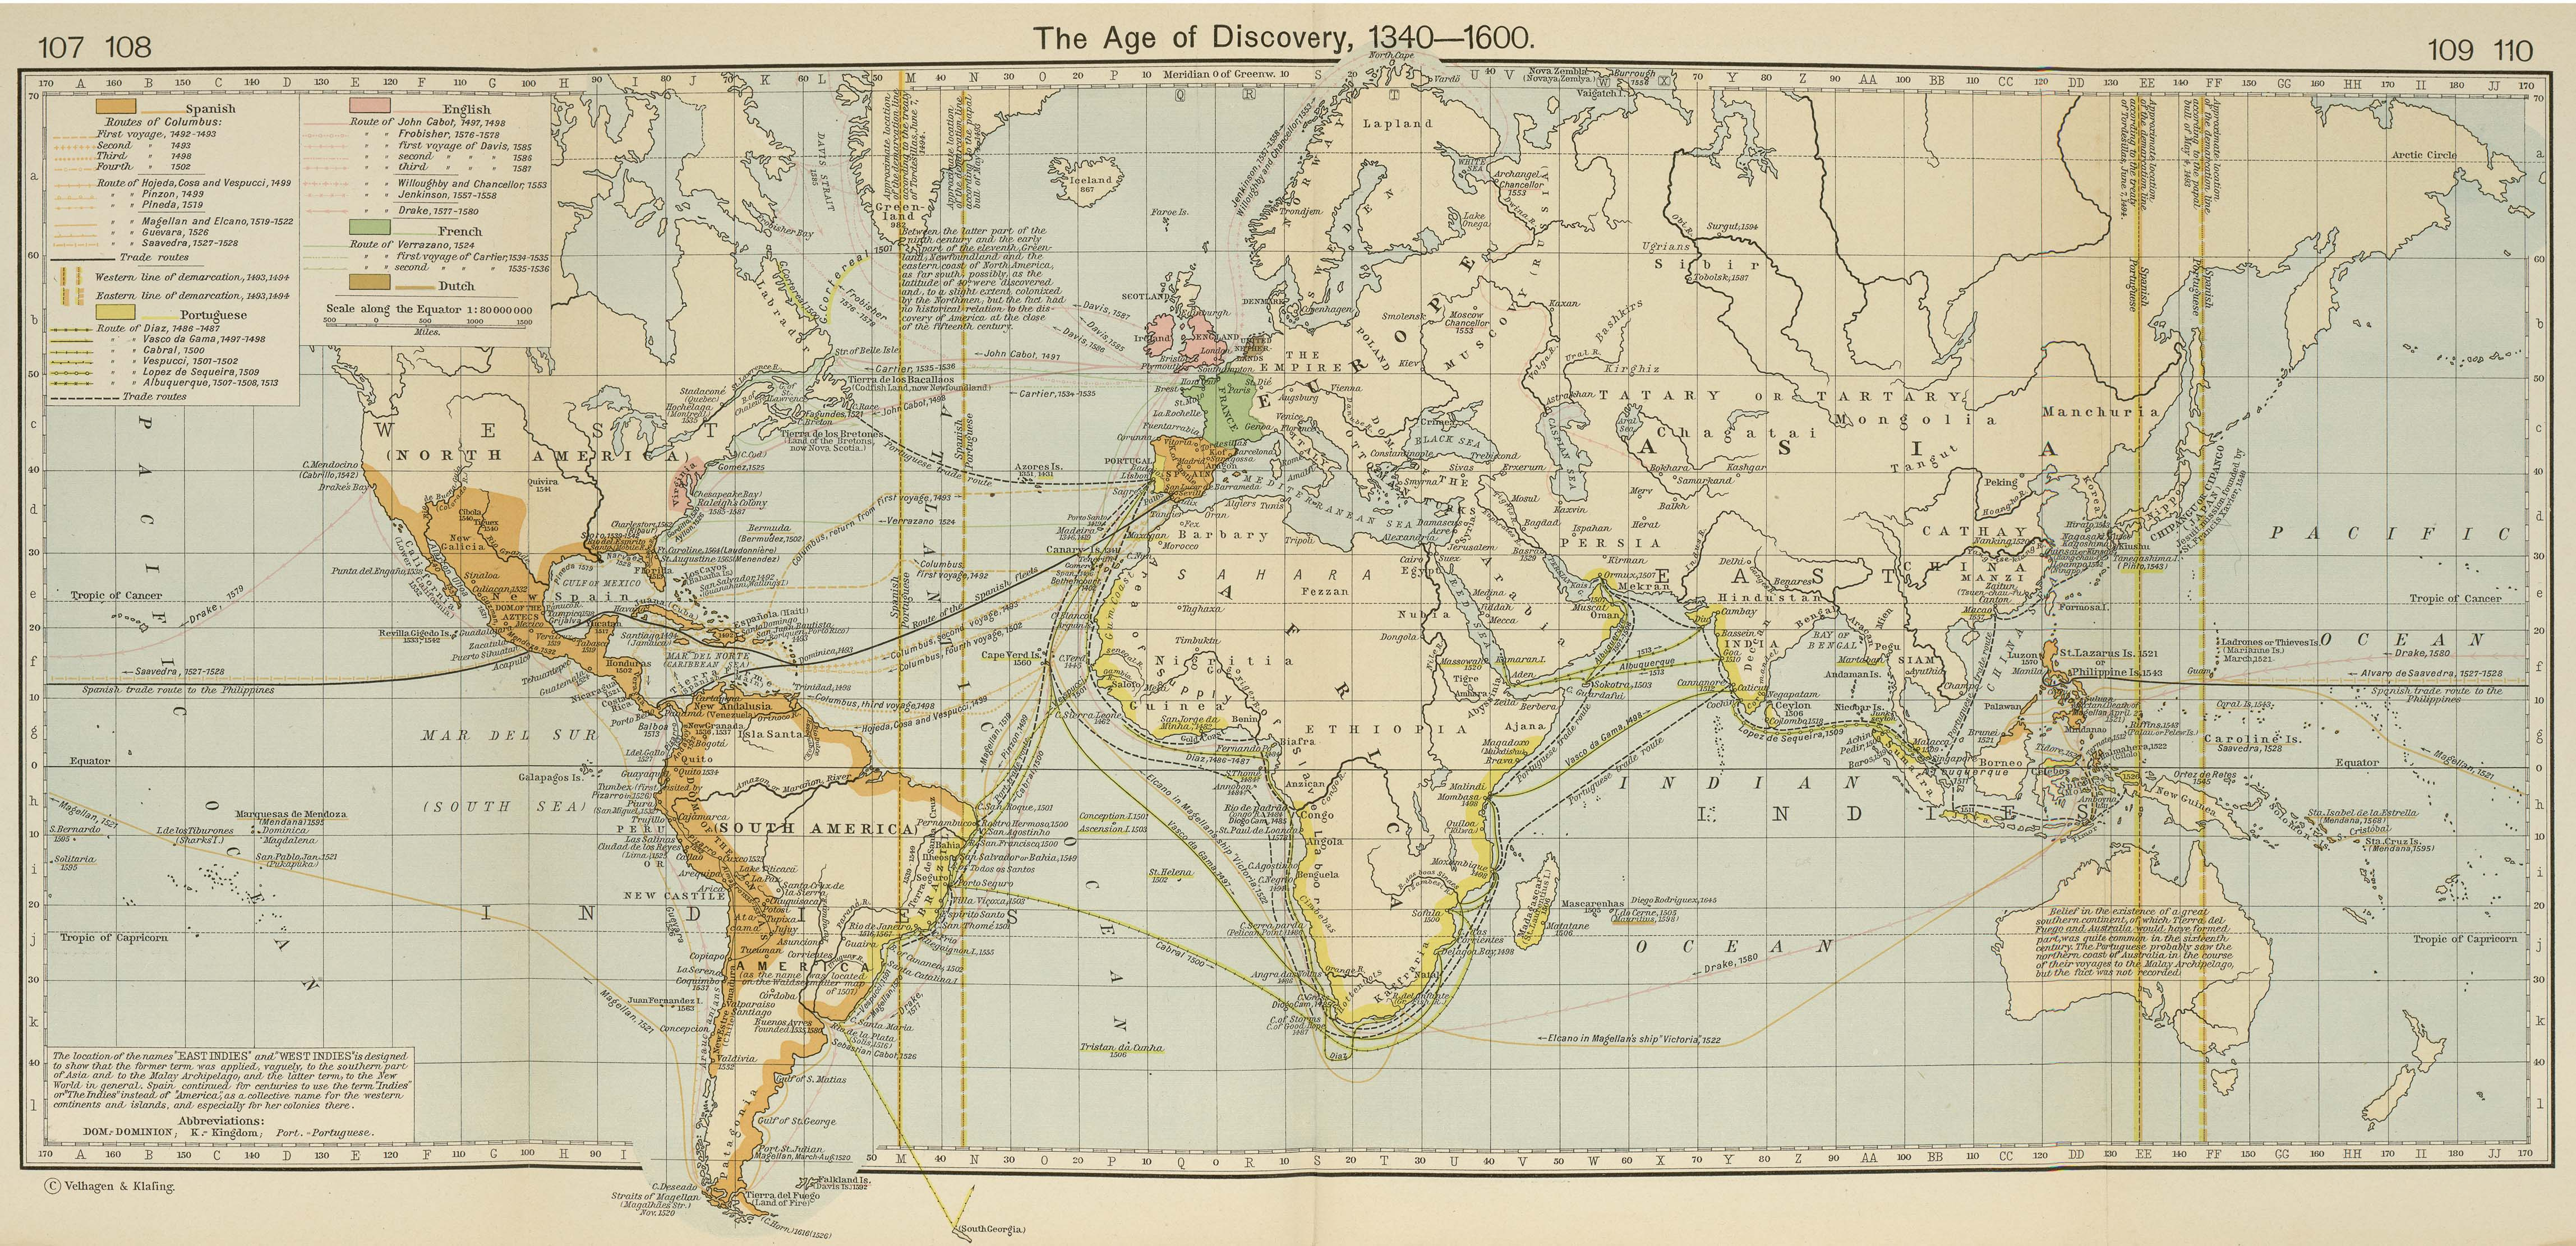 World historical maps perry castaeda map collection ut the age of discovery 1340 1600 gumiabroncs Images